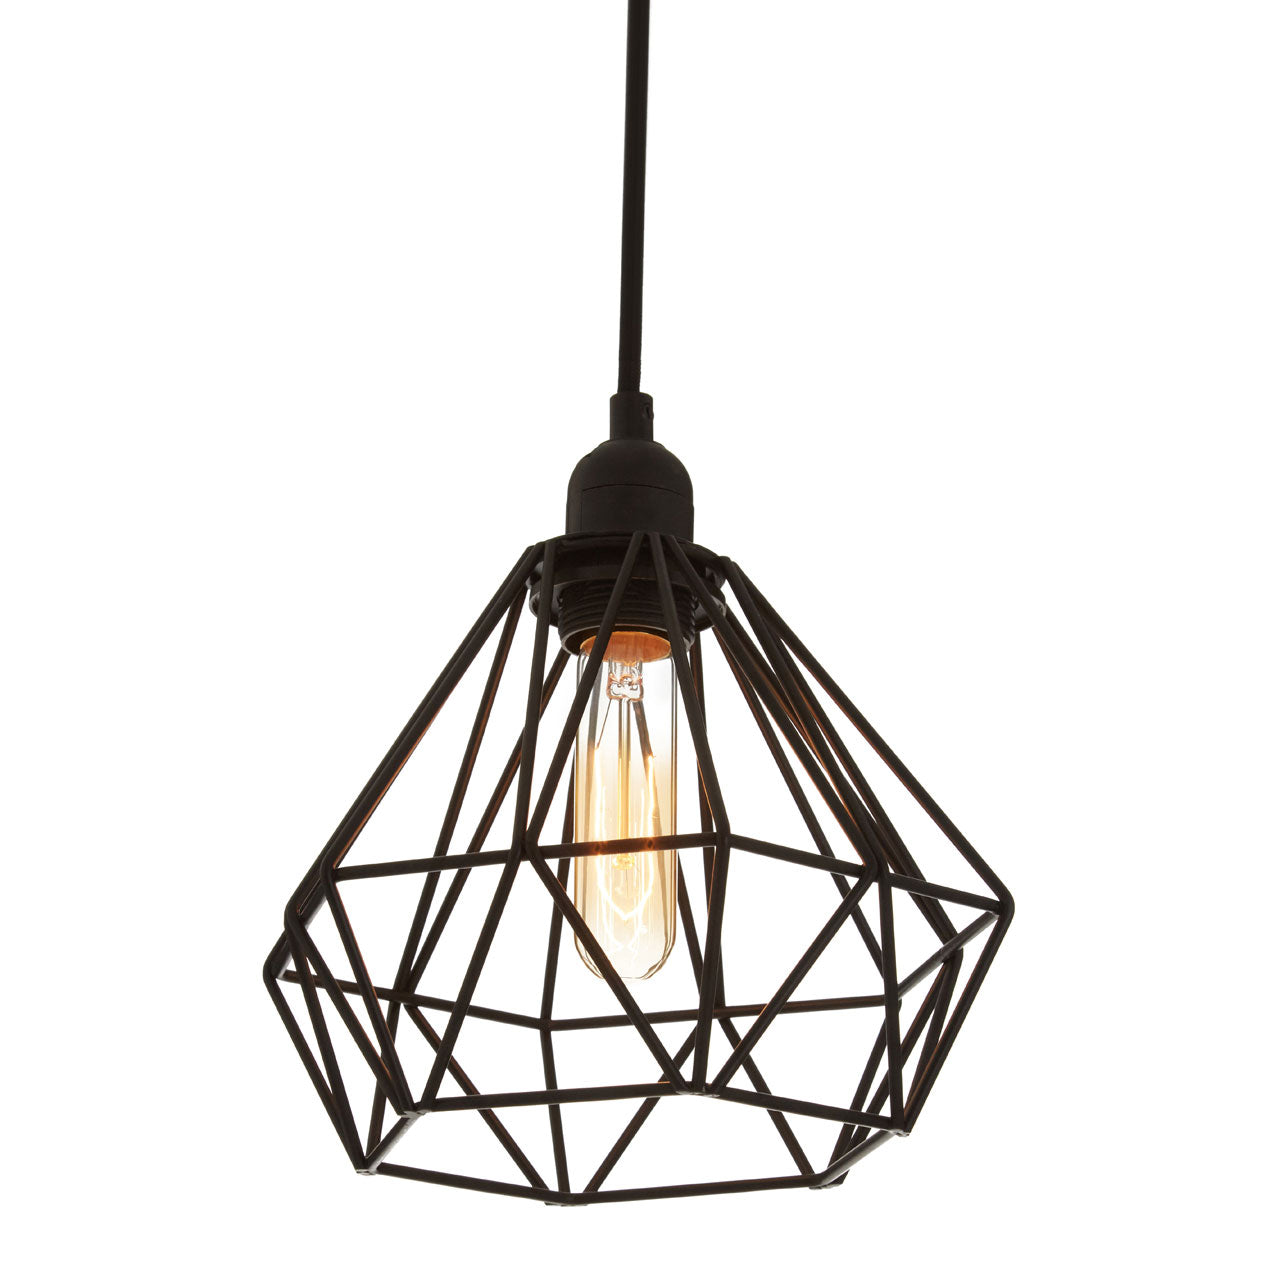 Bartol Pendant Light Black - Ezzo